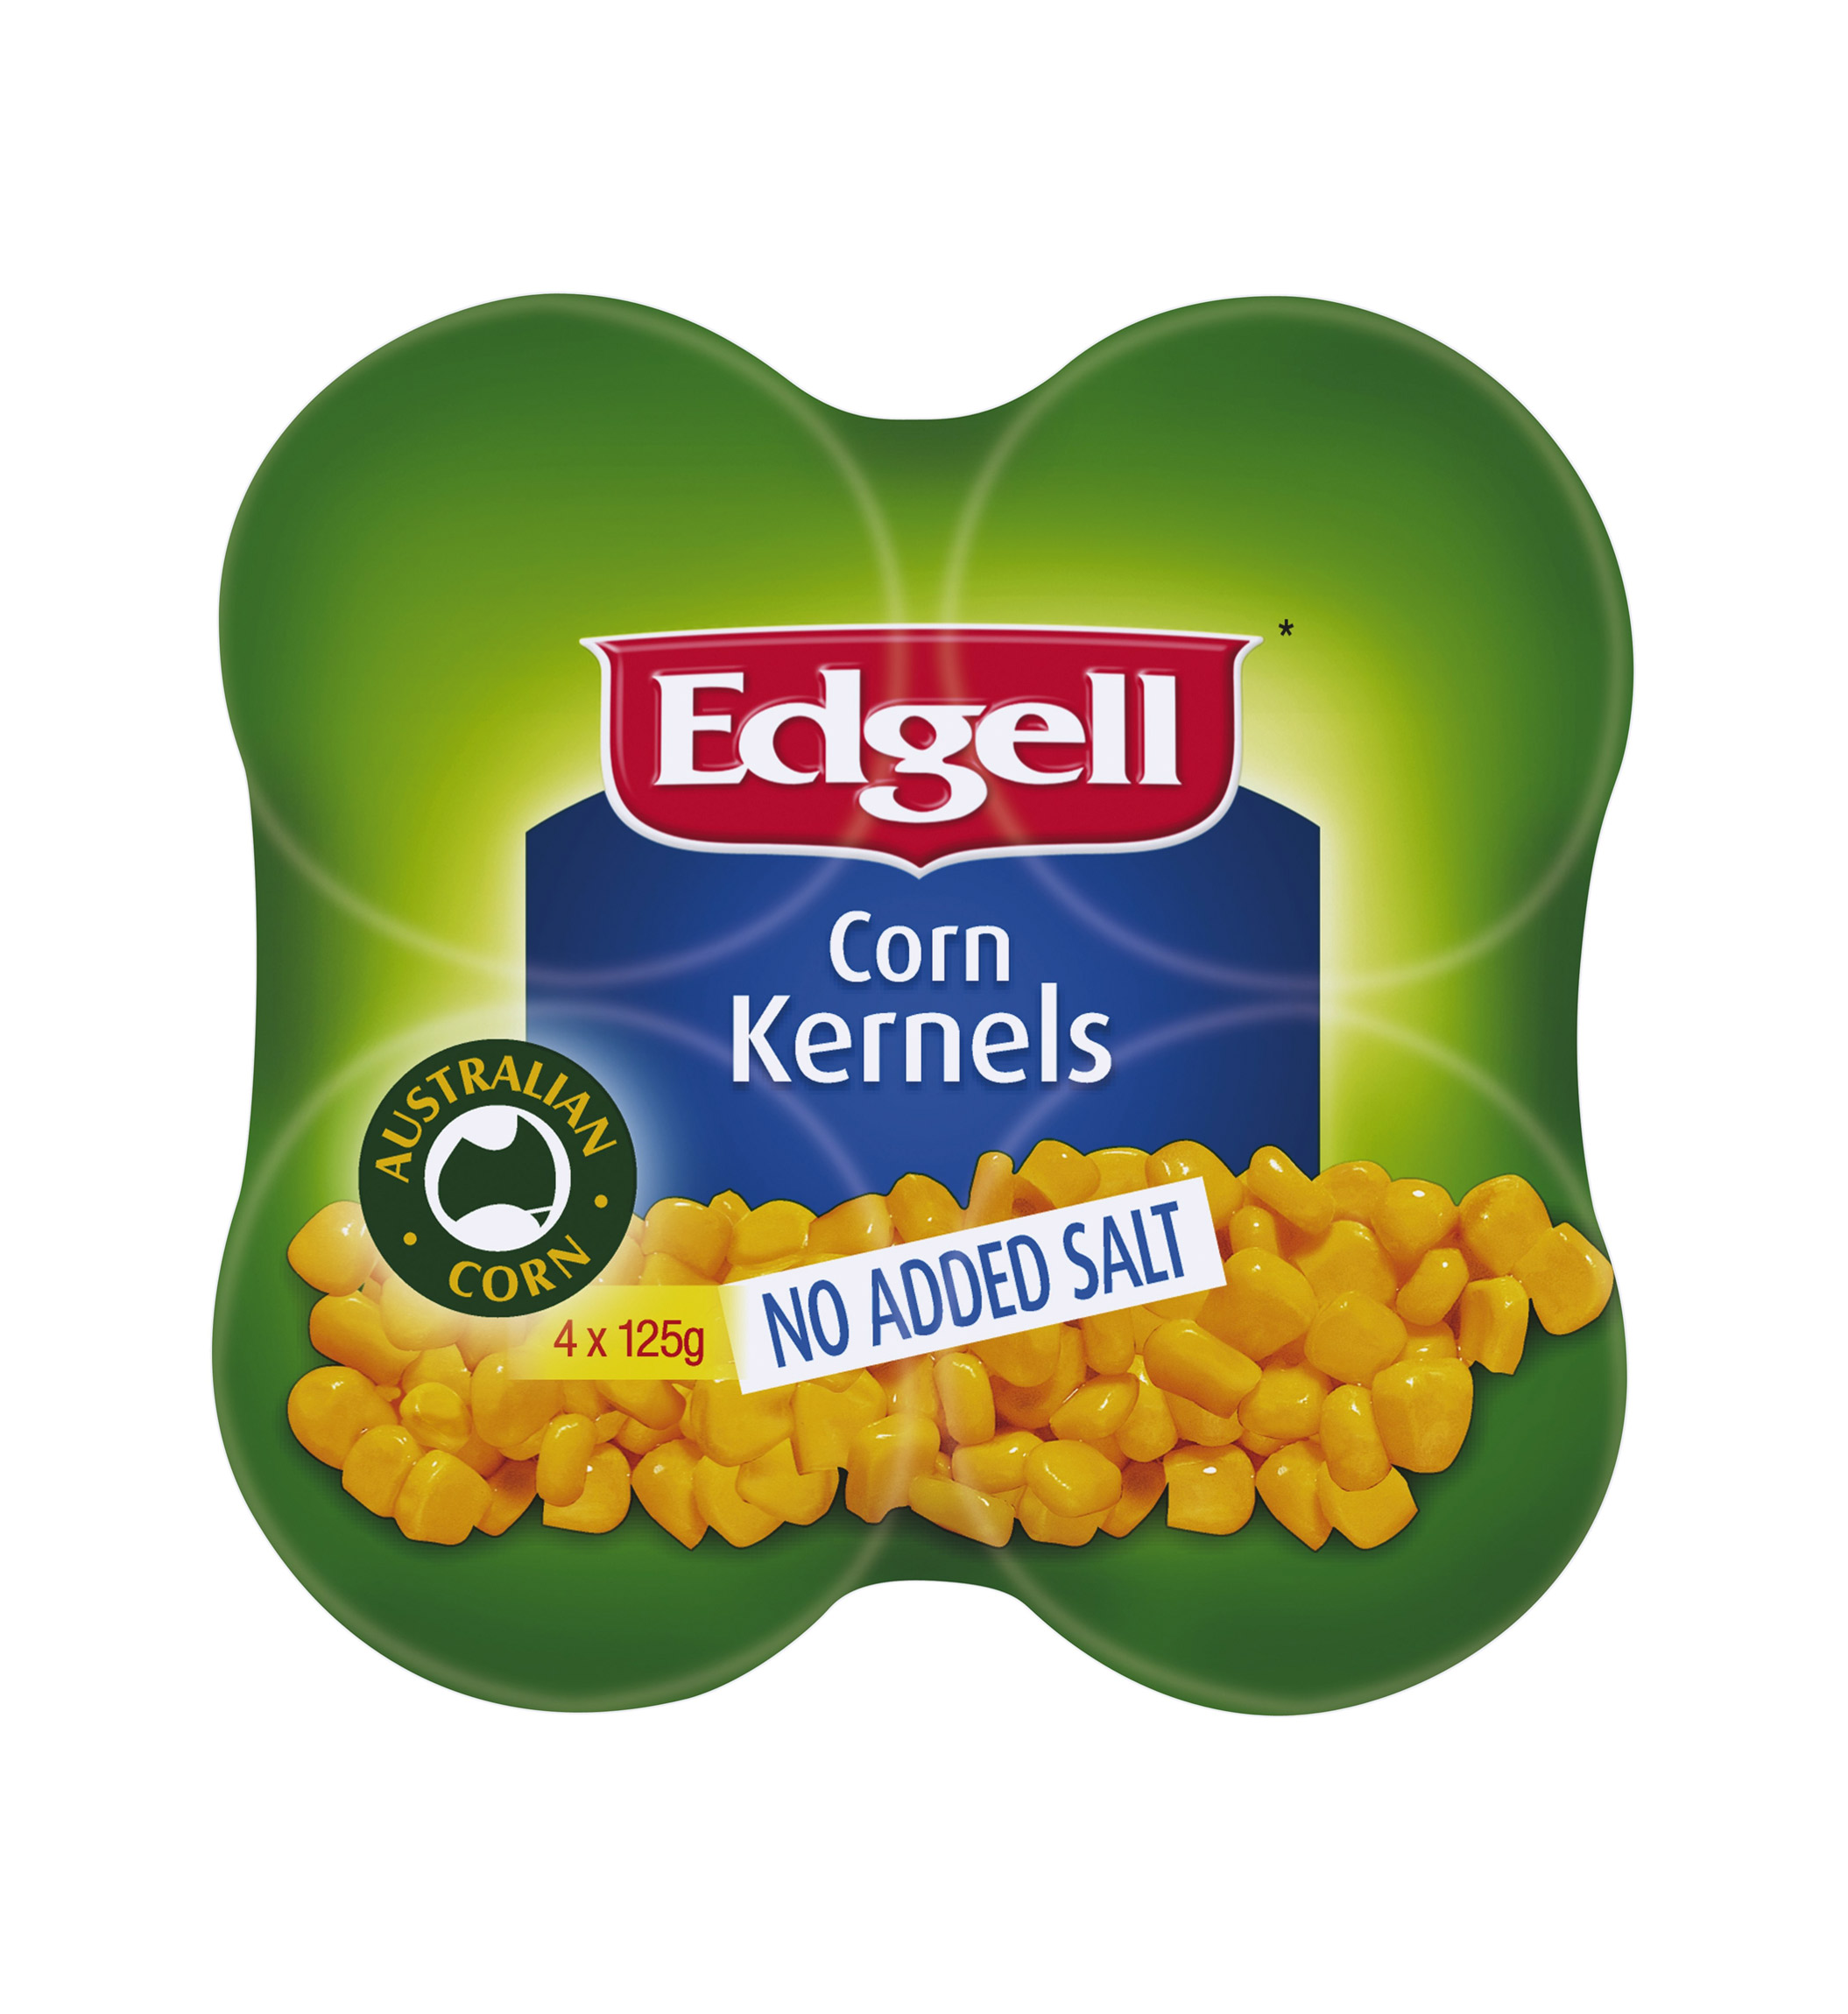 Corn Kernels No Added Salt 4 x 125g